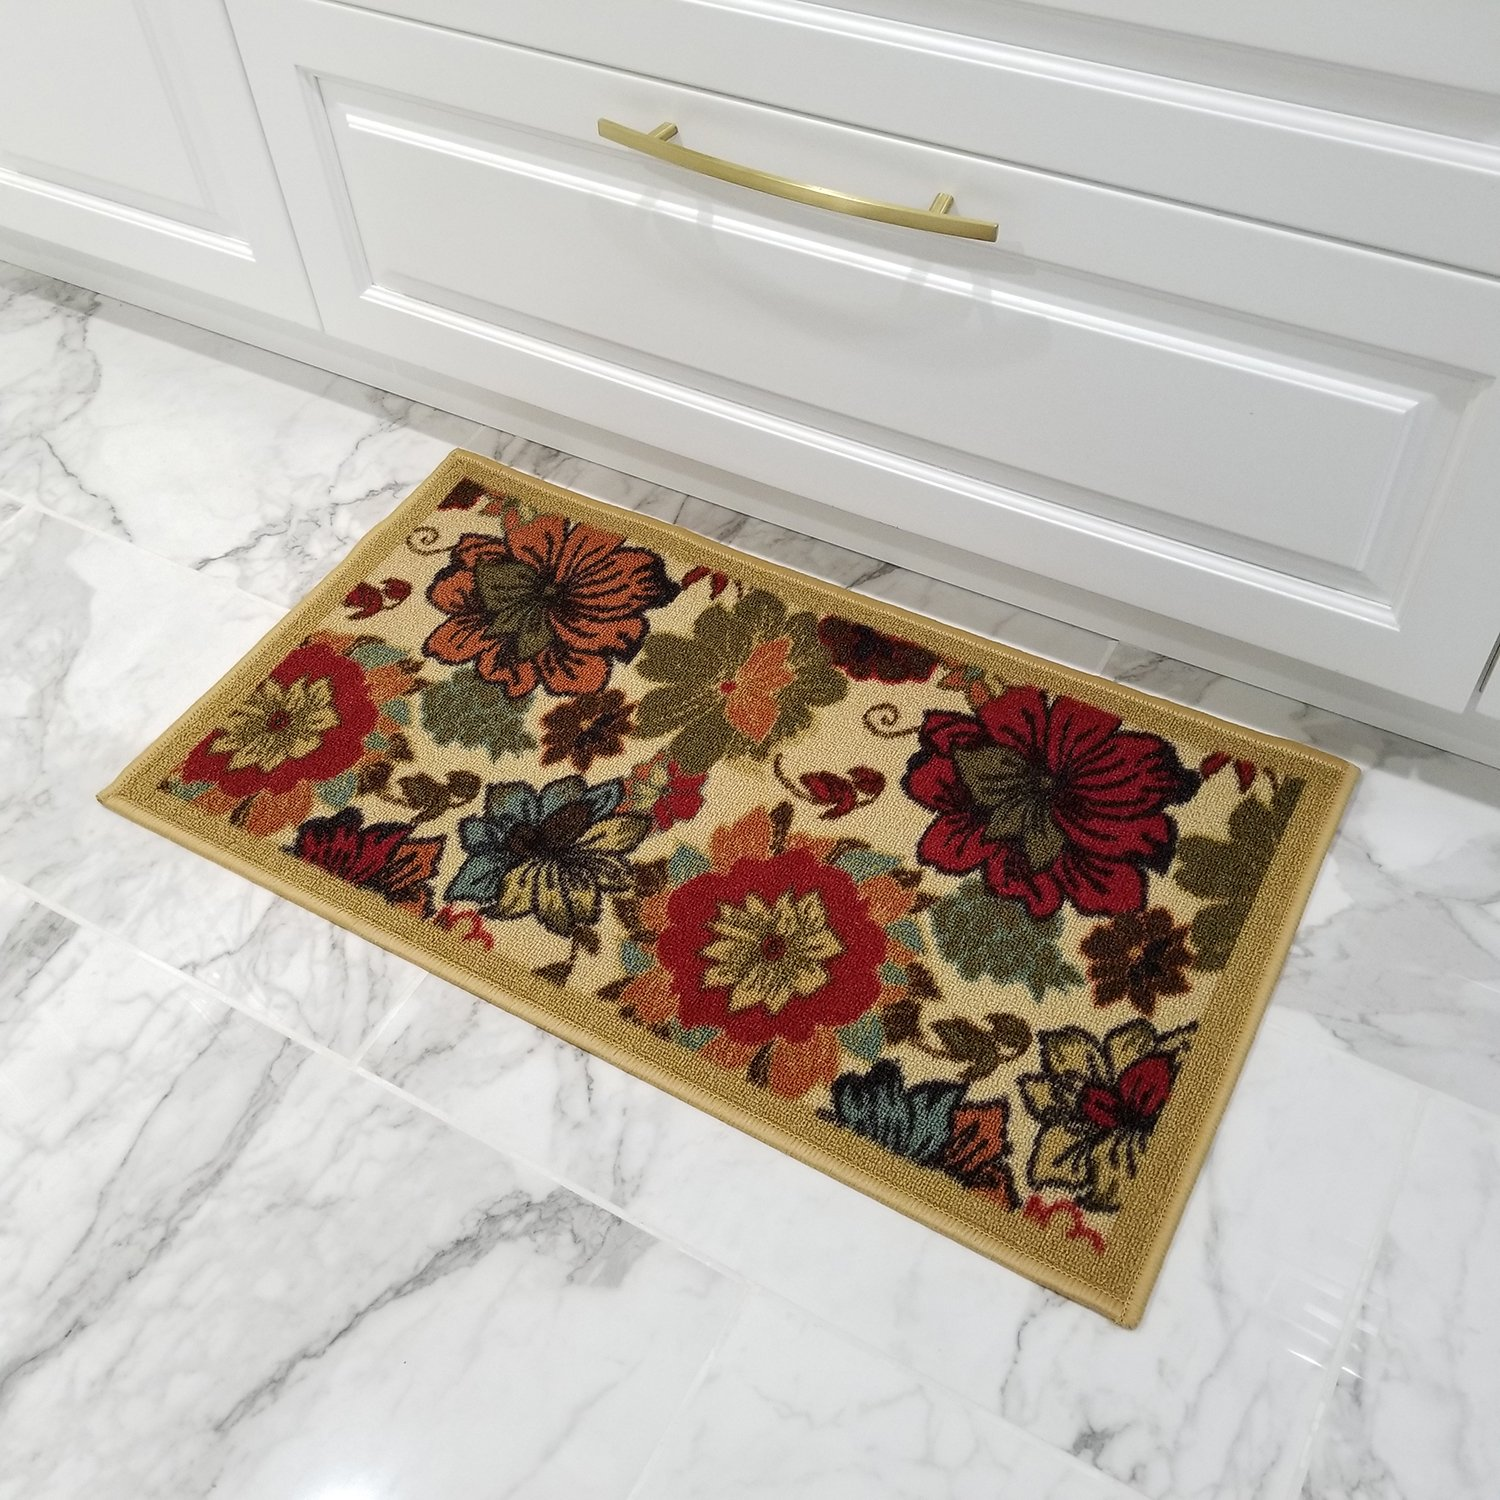 Doormat 18x30 Beige Floral Kitchen Rugs and mats | Rubber Backed Non Skid Rug Living Room Bathroom Nursery Home Decor Under Door Entryway Floor Carpet Non Slip Washable | Made in Europe